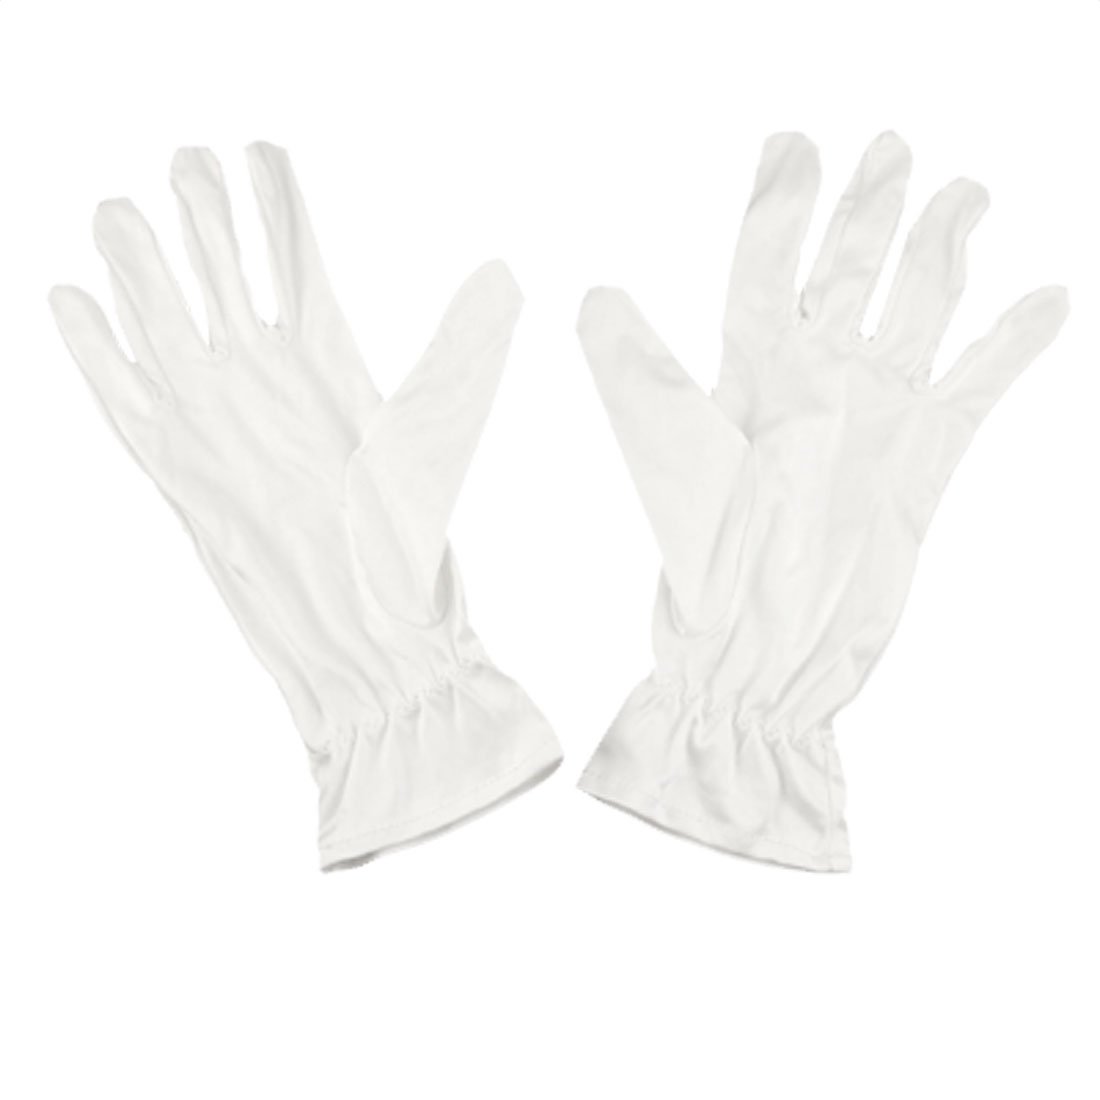 White Microfiber Dust Proof Full Fingers Jewelry Silver Inspection Working Gloves